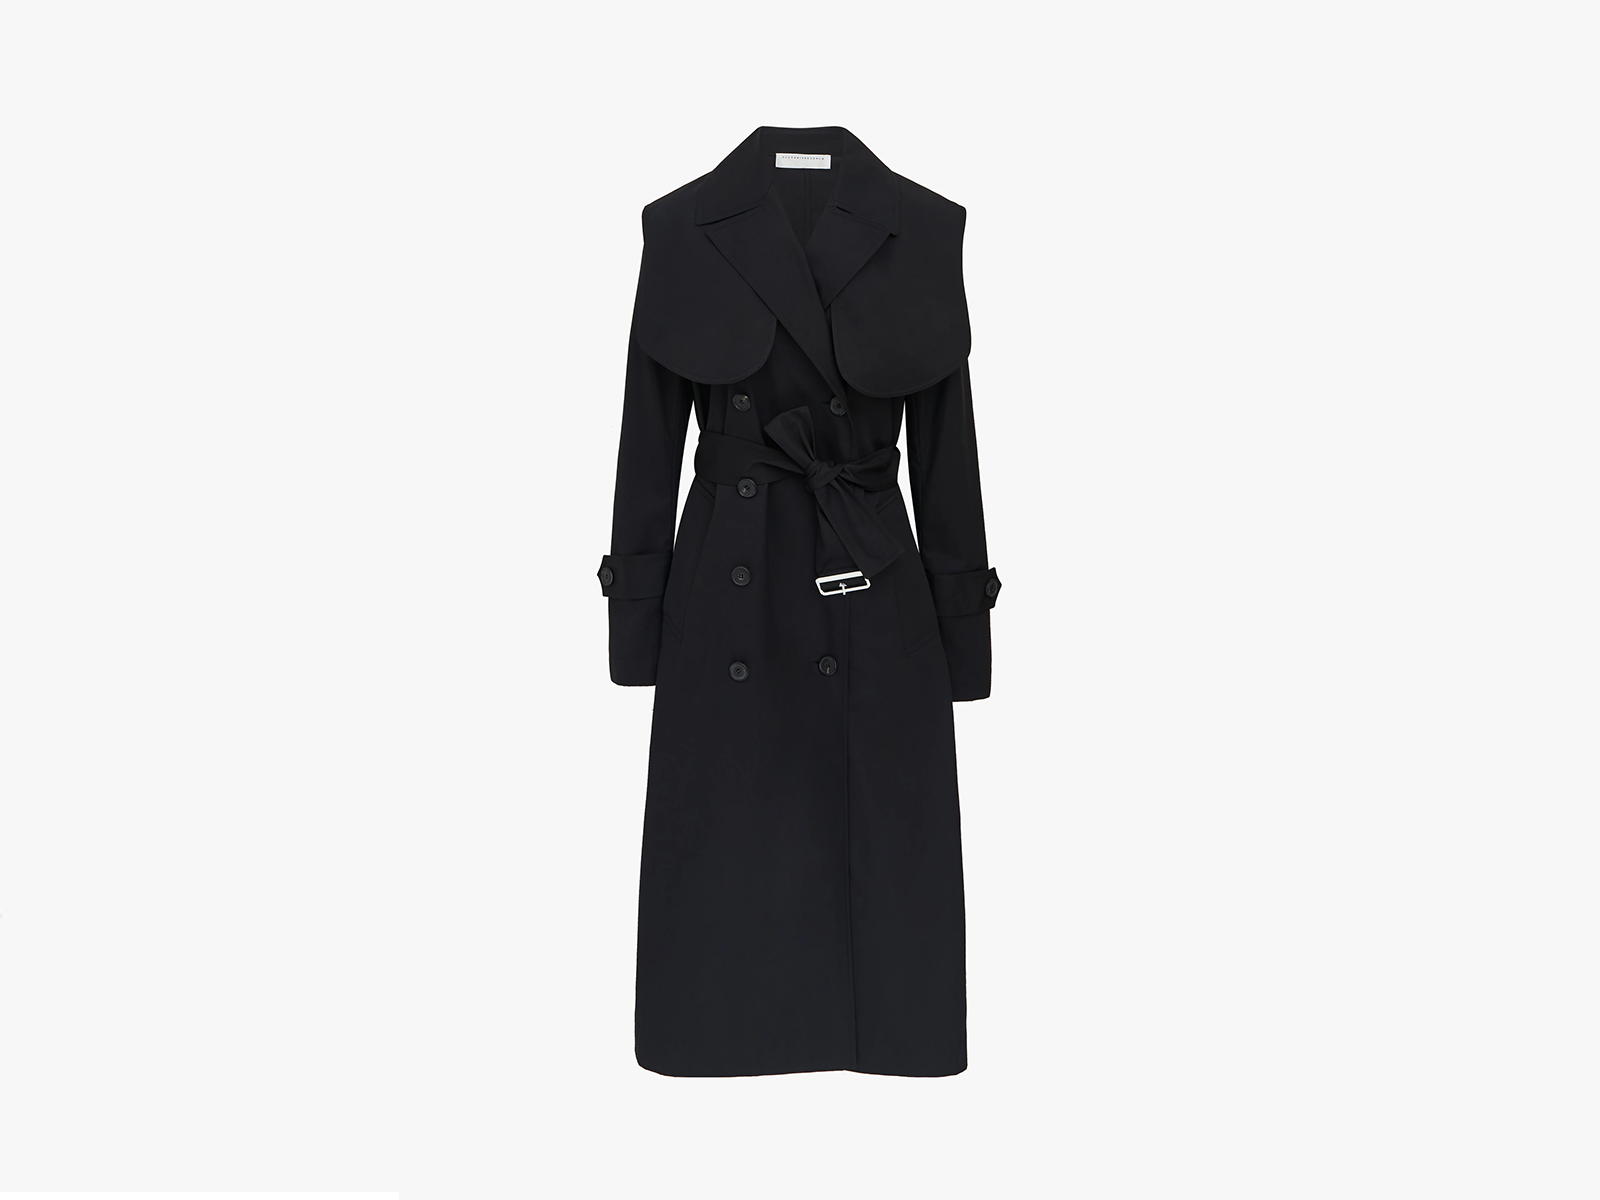 Victoria Beckham Classic Trench Coat In Black